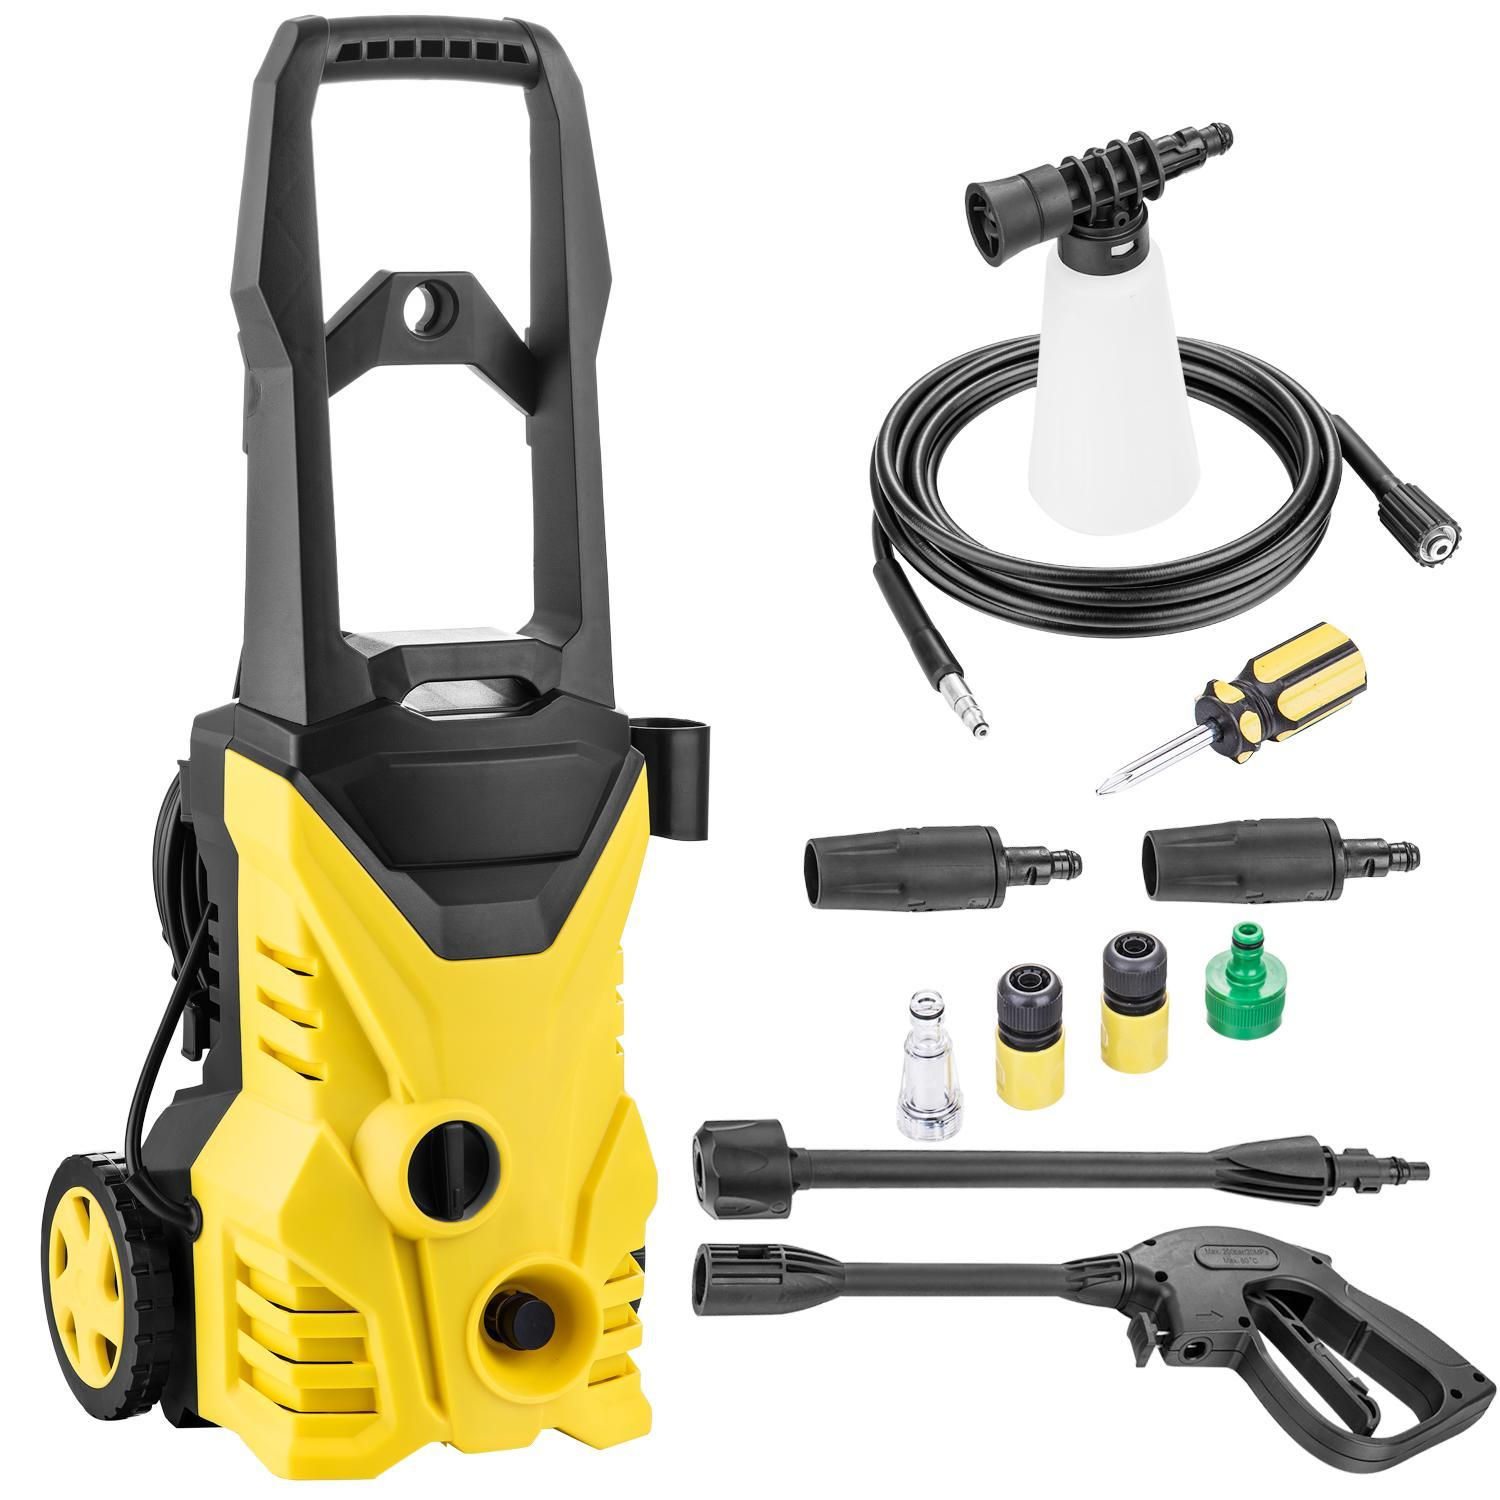 Big Drop!2000 PSI 1.4 GPM Electric Pressure Washer with Power Garden Home BYE